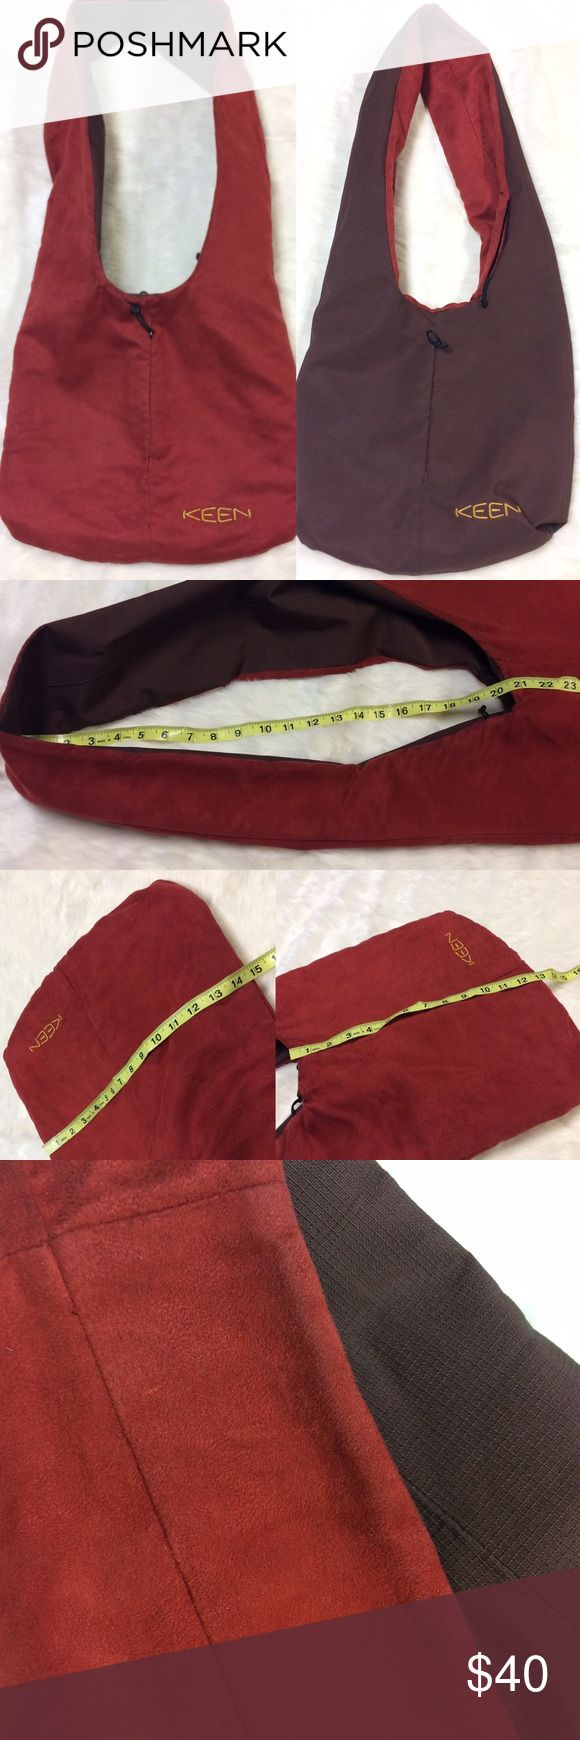 Reversible KEEN Large Crossbody Bag Brown Red See pics for measurements. Some signs of wear-see pics. Still lots of life left in this! Perfect for shopping, camping, hiking, gym, worth-anything! Keen Bags Crossbody Bags